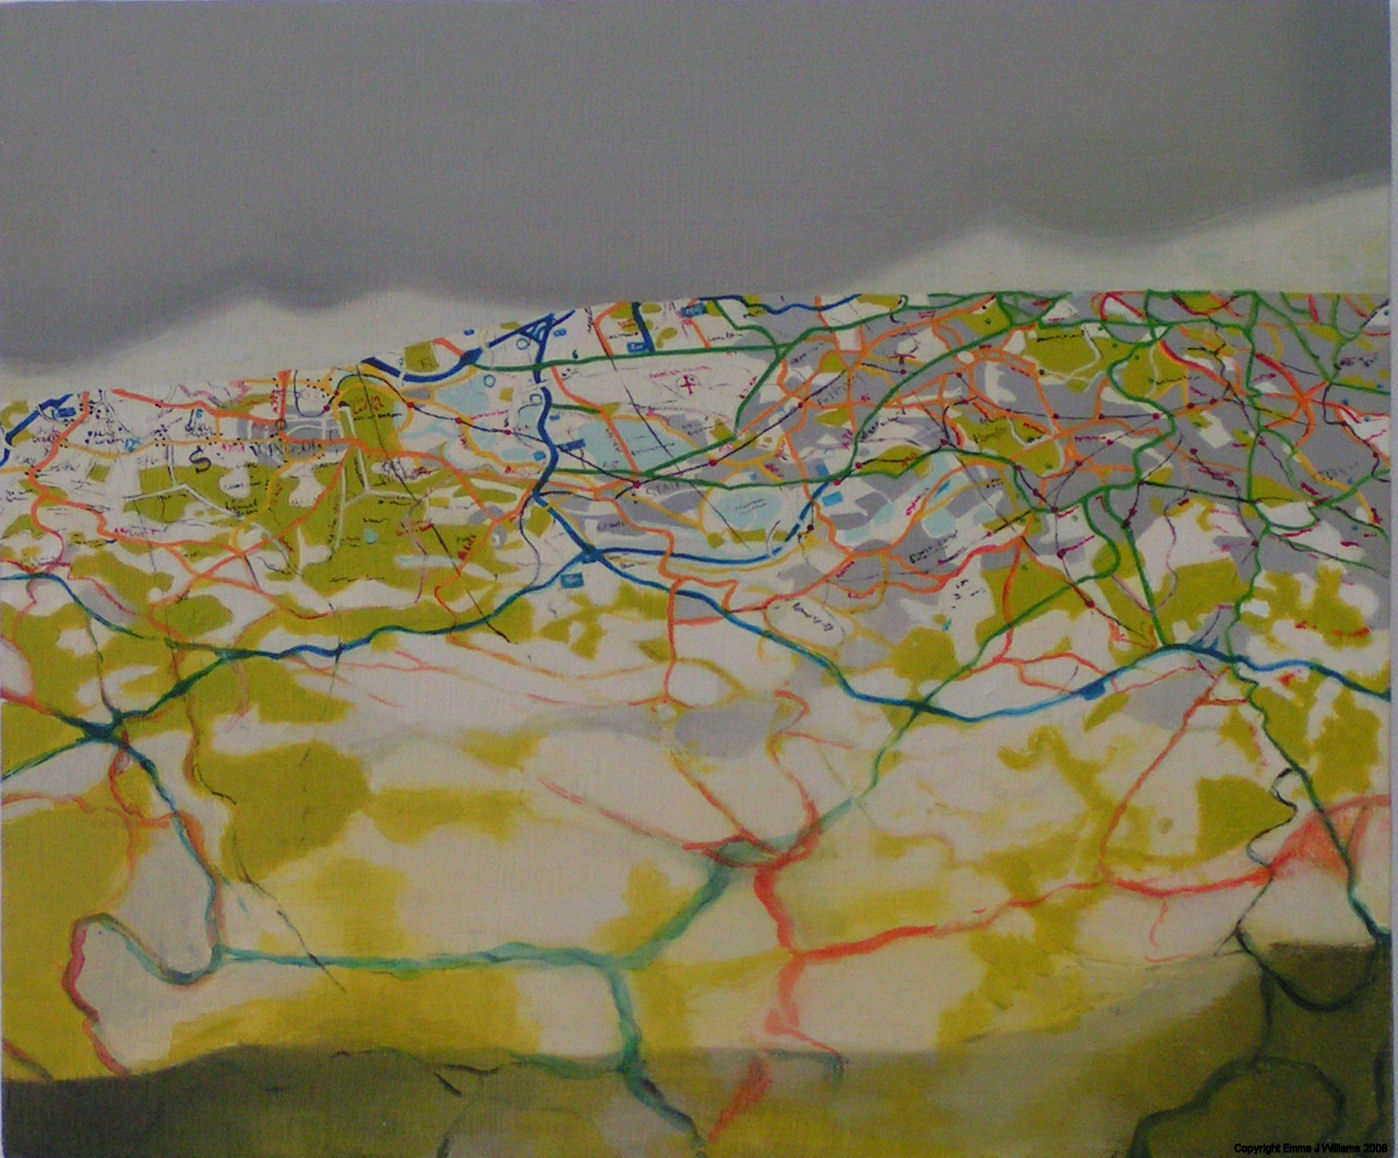 Emma J Williams 'Thames Valley' 2000 oil on board